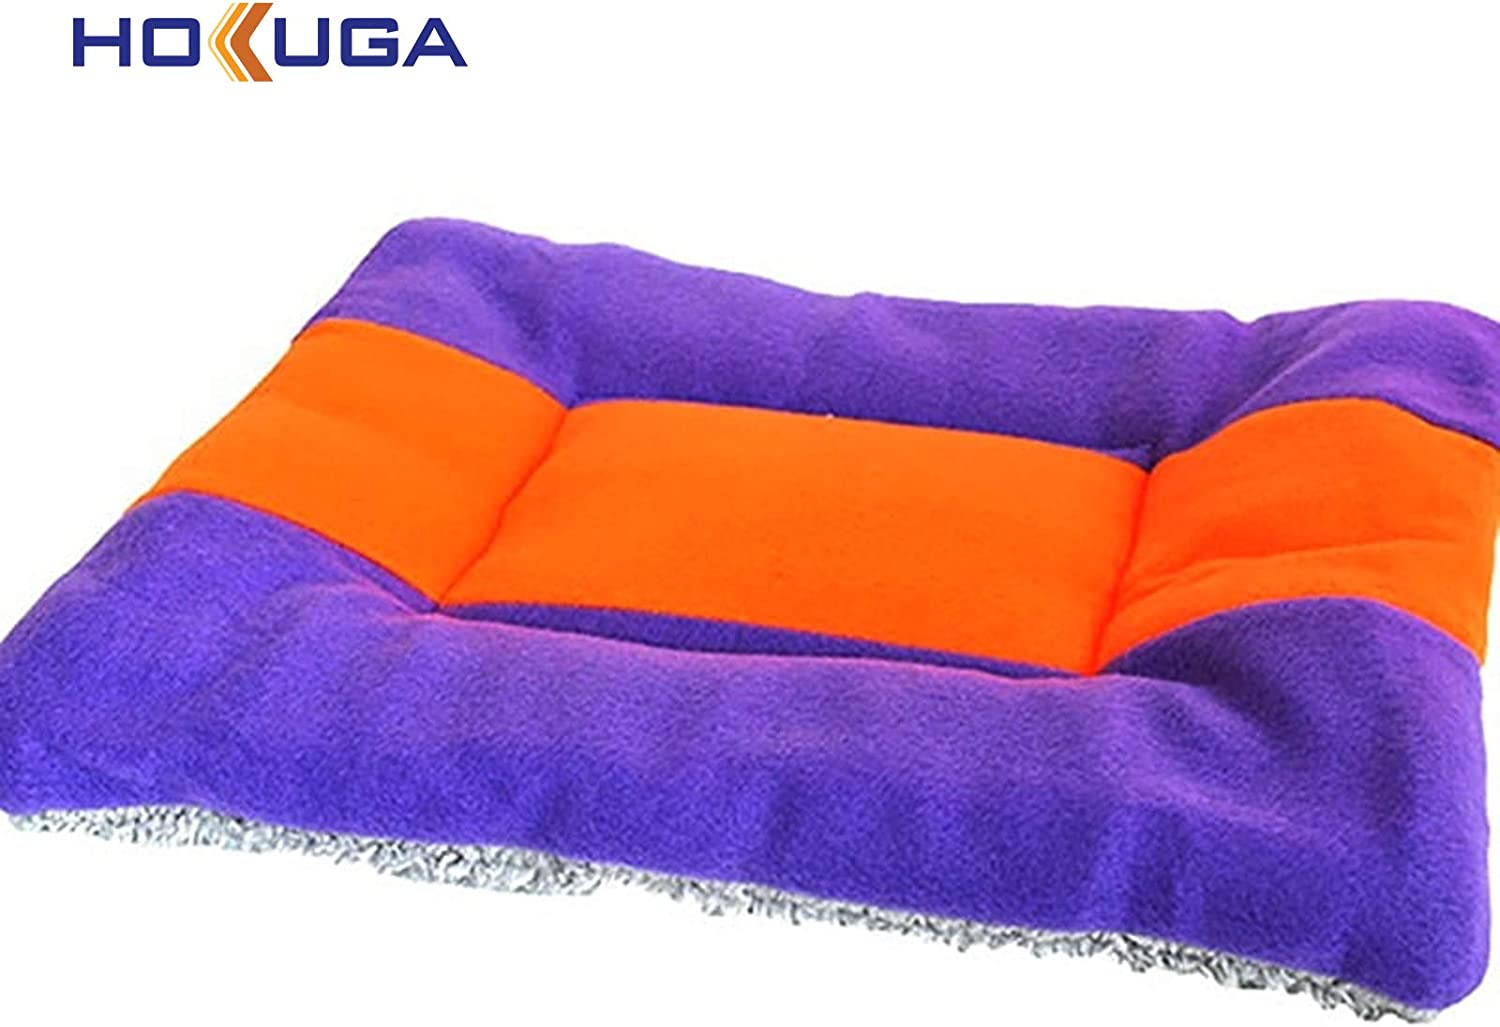 HOKUGA Pet Bed Mat Ultra Ultra Durable Pet Nest Dog Bed Cat Soft Fleece Mat Winter warning Kennel Bed Sofa for Small Puppy Medium Large Dogs